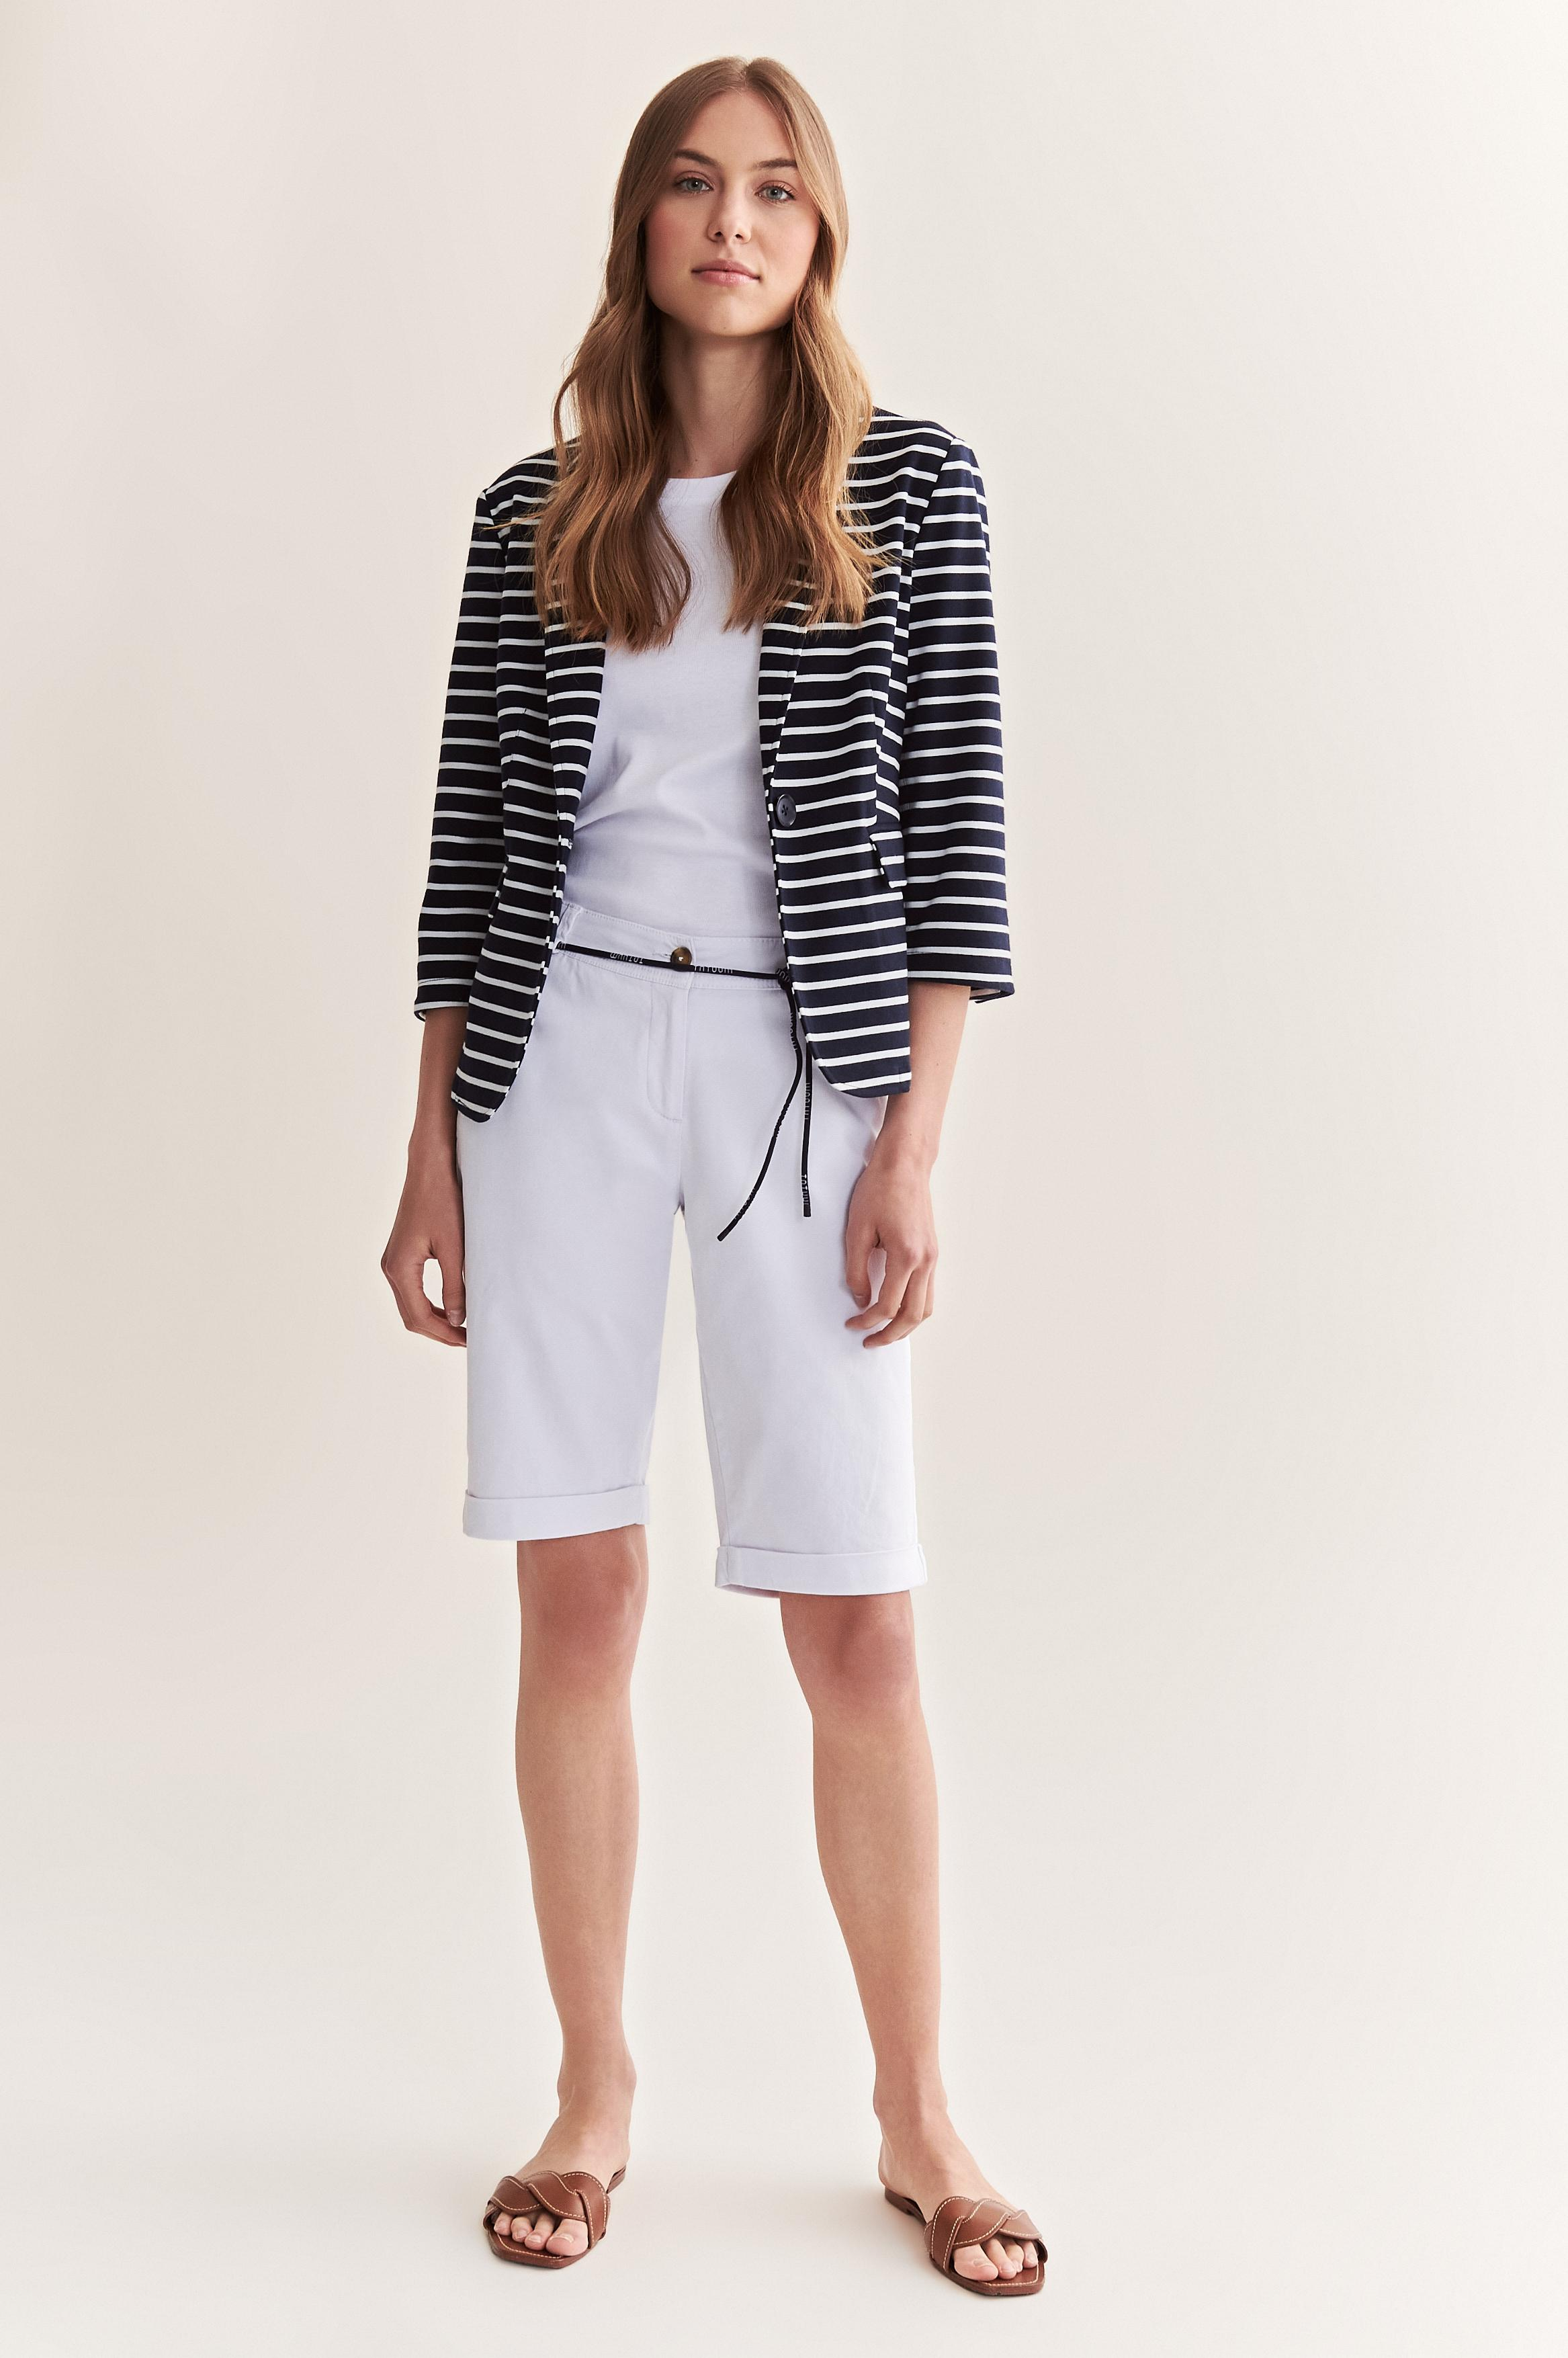 LADIES' JACKET WITH NAVY STRIPES BERTI